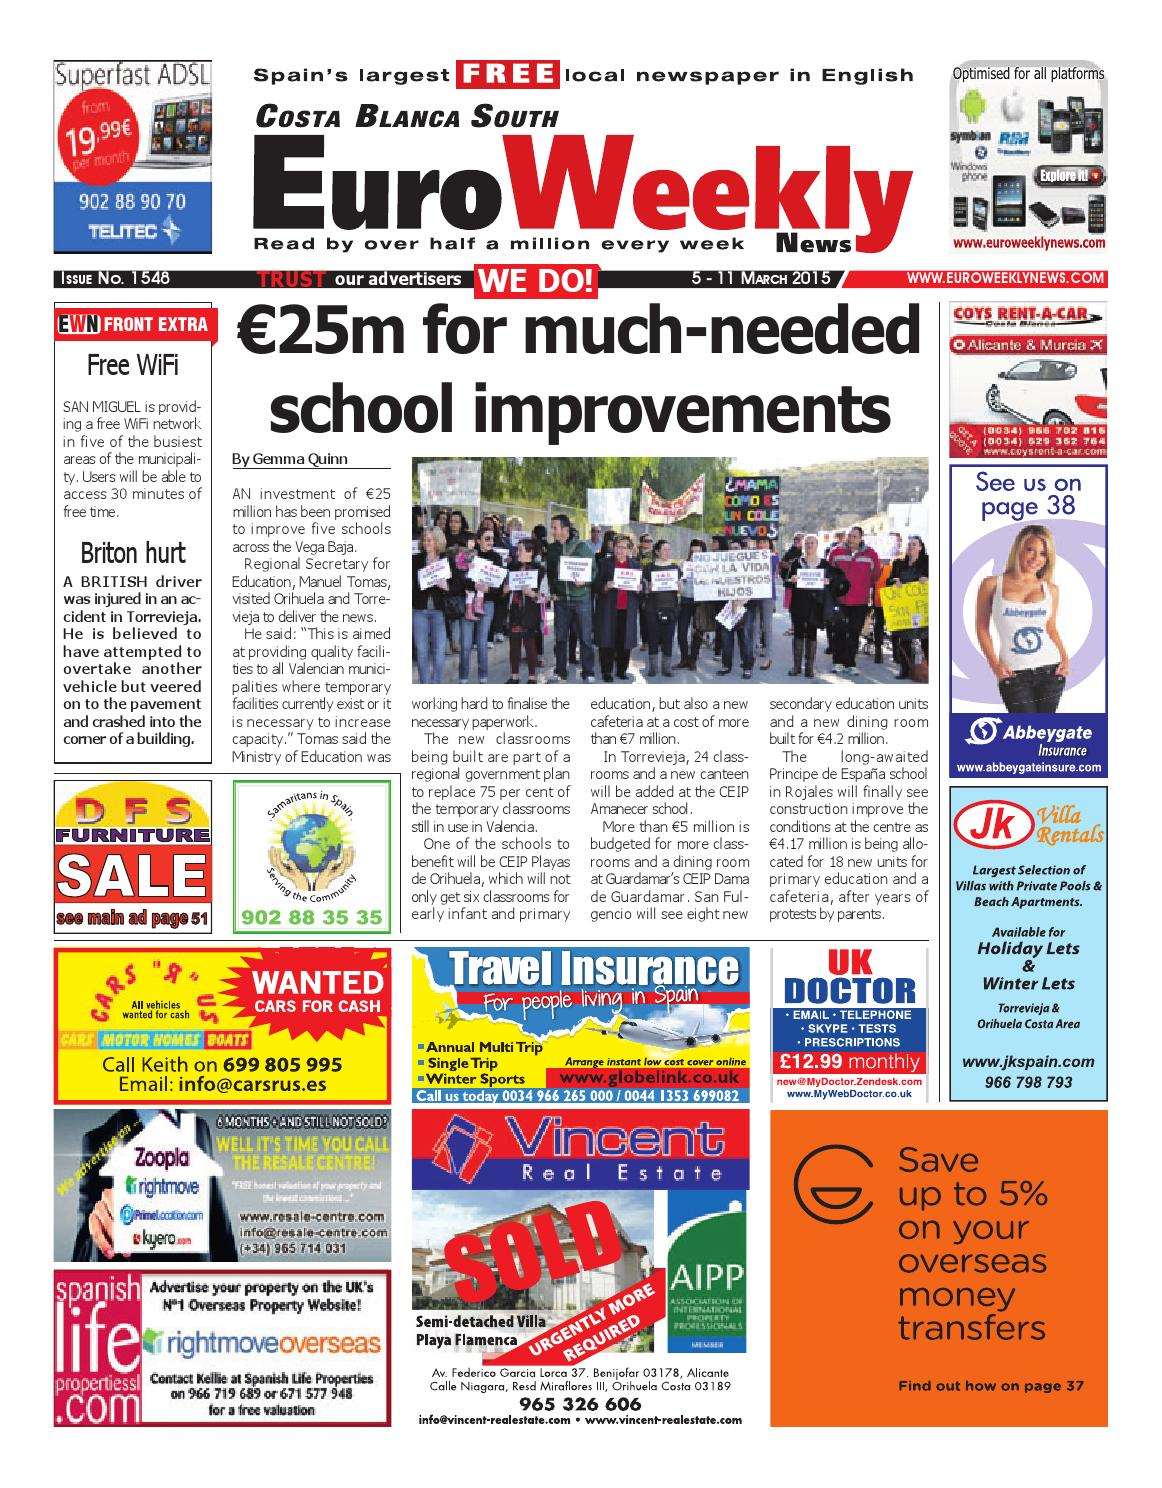 Euro weekly news costa blanca south 5 11 march 2015 issue 1548 euro weekly news costa blanca south 5 11 march 2015 issue 1548 by euro weekly news media sa issuu fandeluxe Choice Image